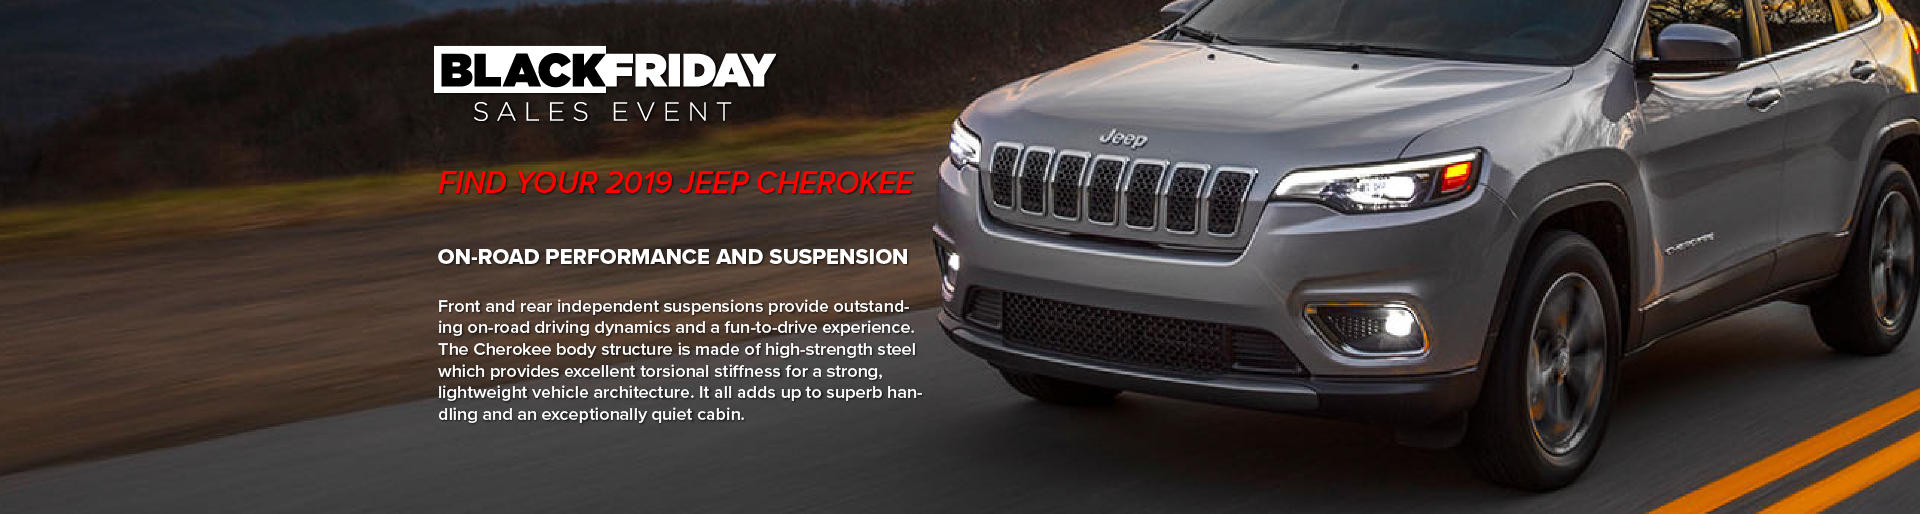 Tanner Motors Cherokee Black Friday Sales Event